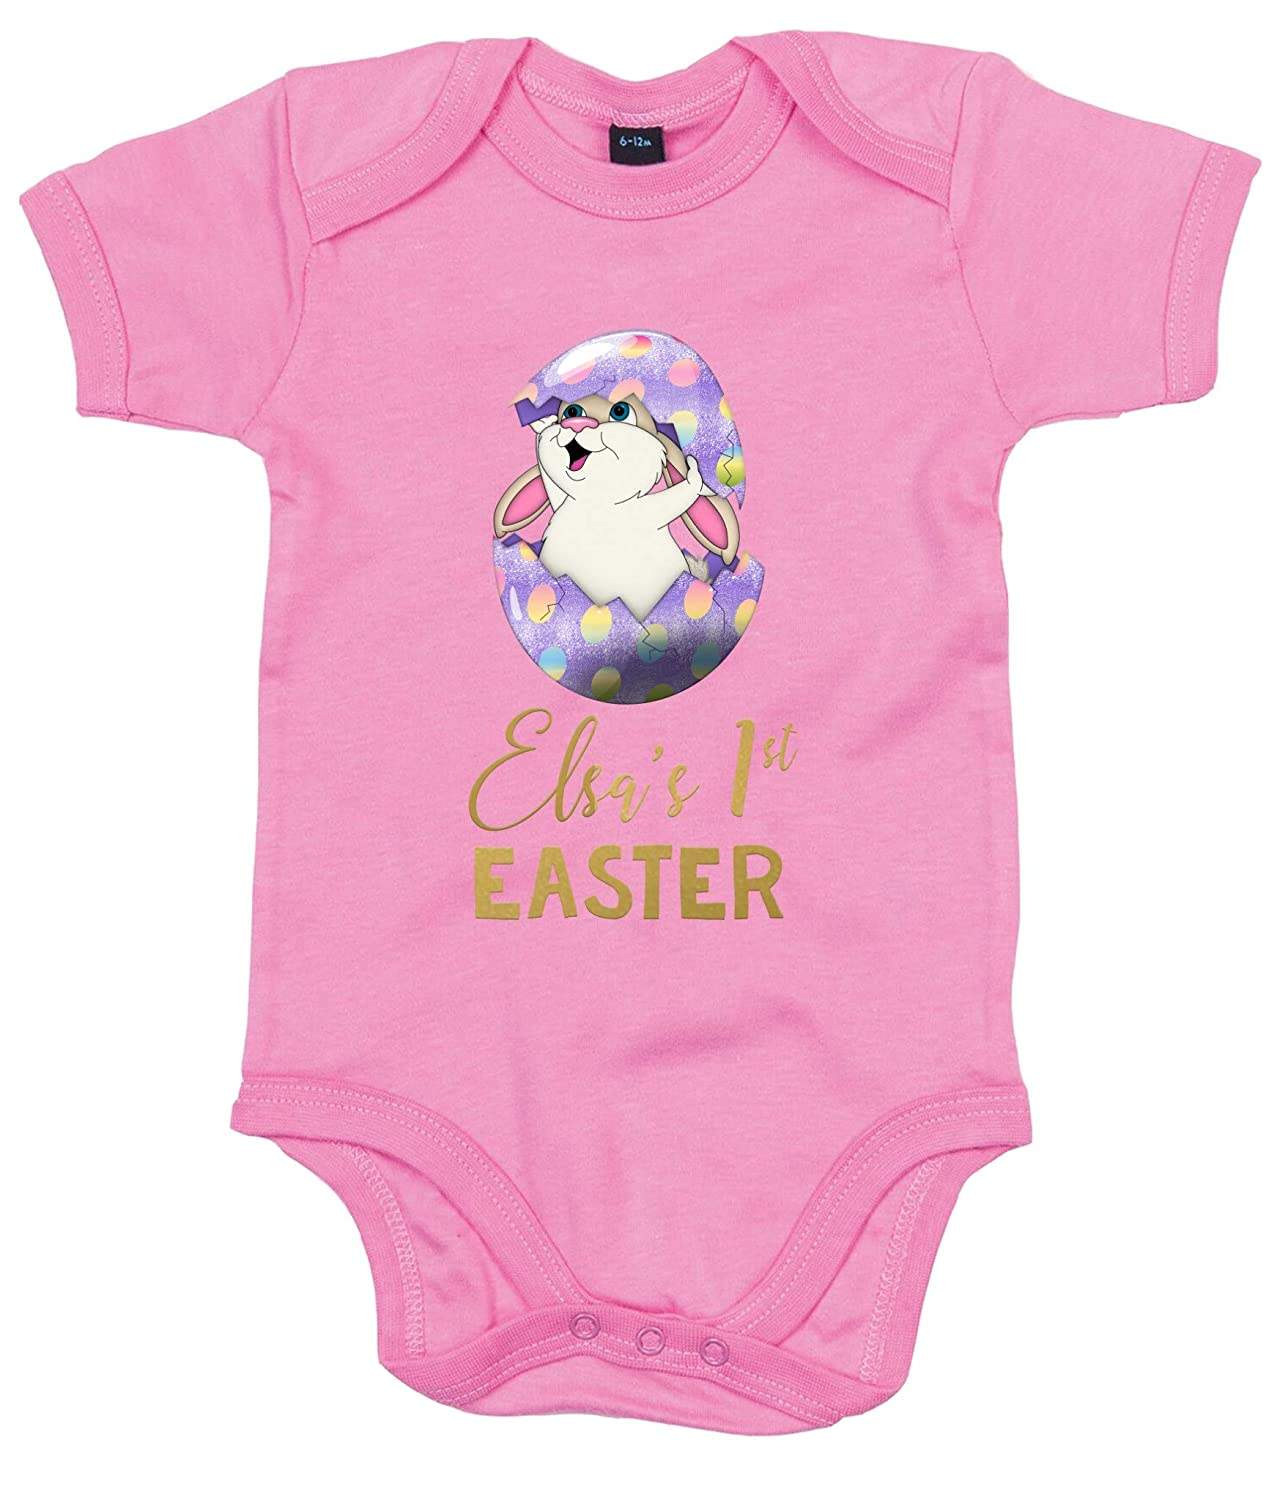 FunkyShirt Custom Baby Grow with Baby Name First Easter Bunny Easter Egg Novelty Baby Grows Baby Girl My First Easter Gift Boy My First Time Rabbit Shirt